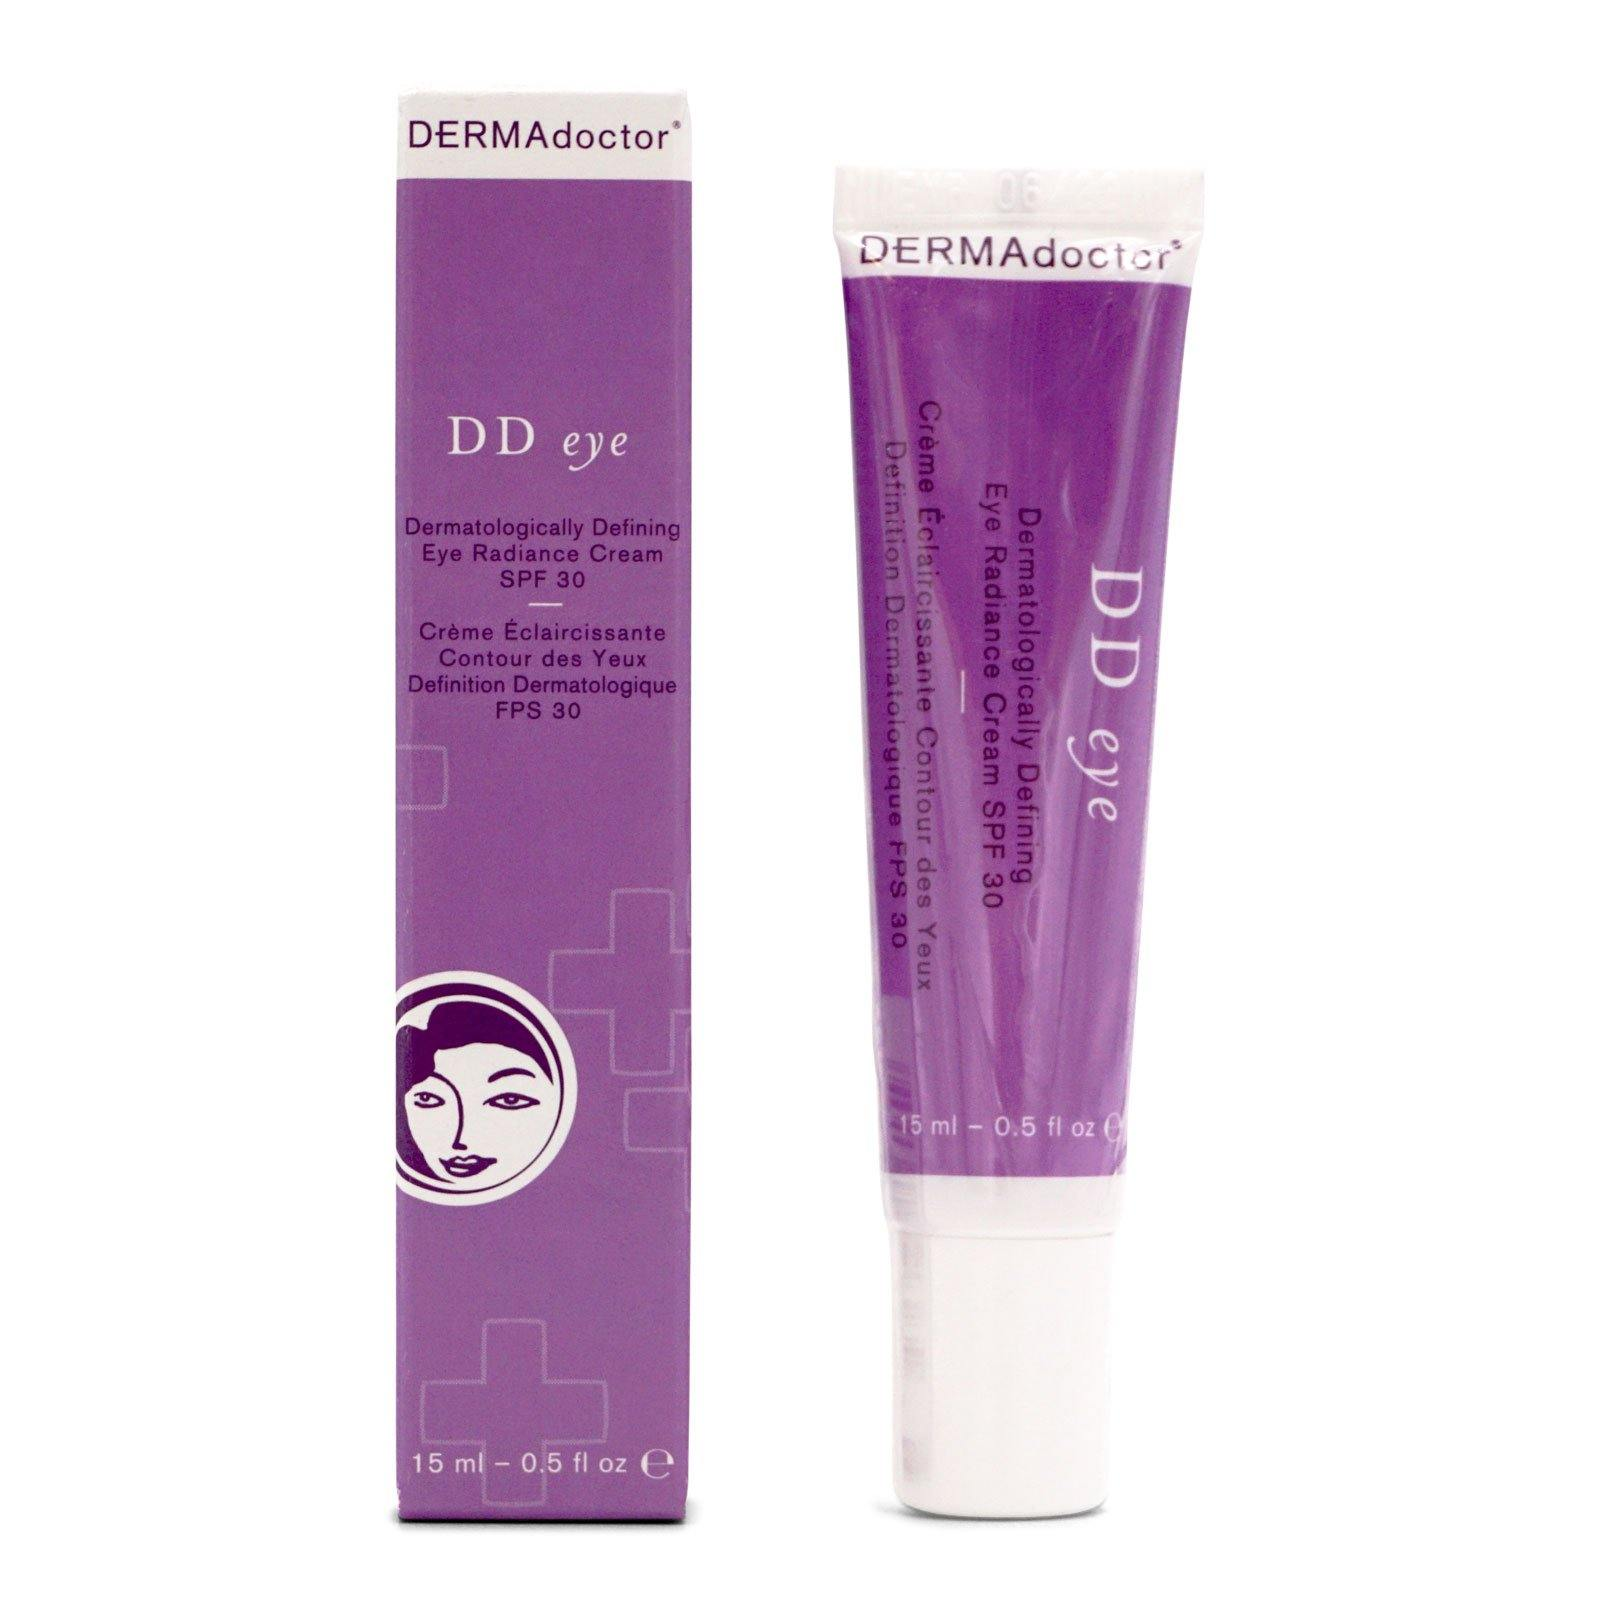 DERMAdoctor DD Eye Dermatologically Defining Eye Radiance Cream SPF 30 - (15ml/0.5oz) (12/cs)